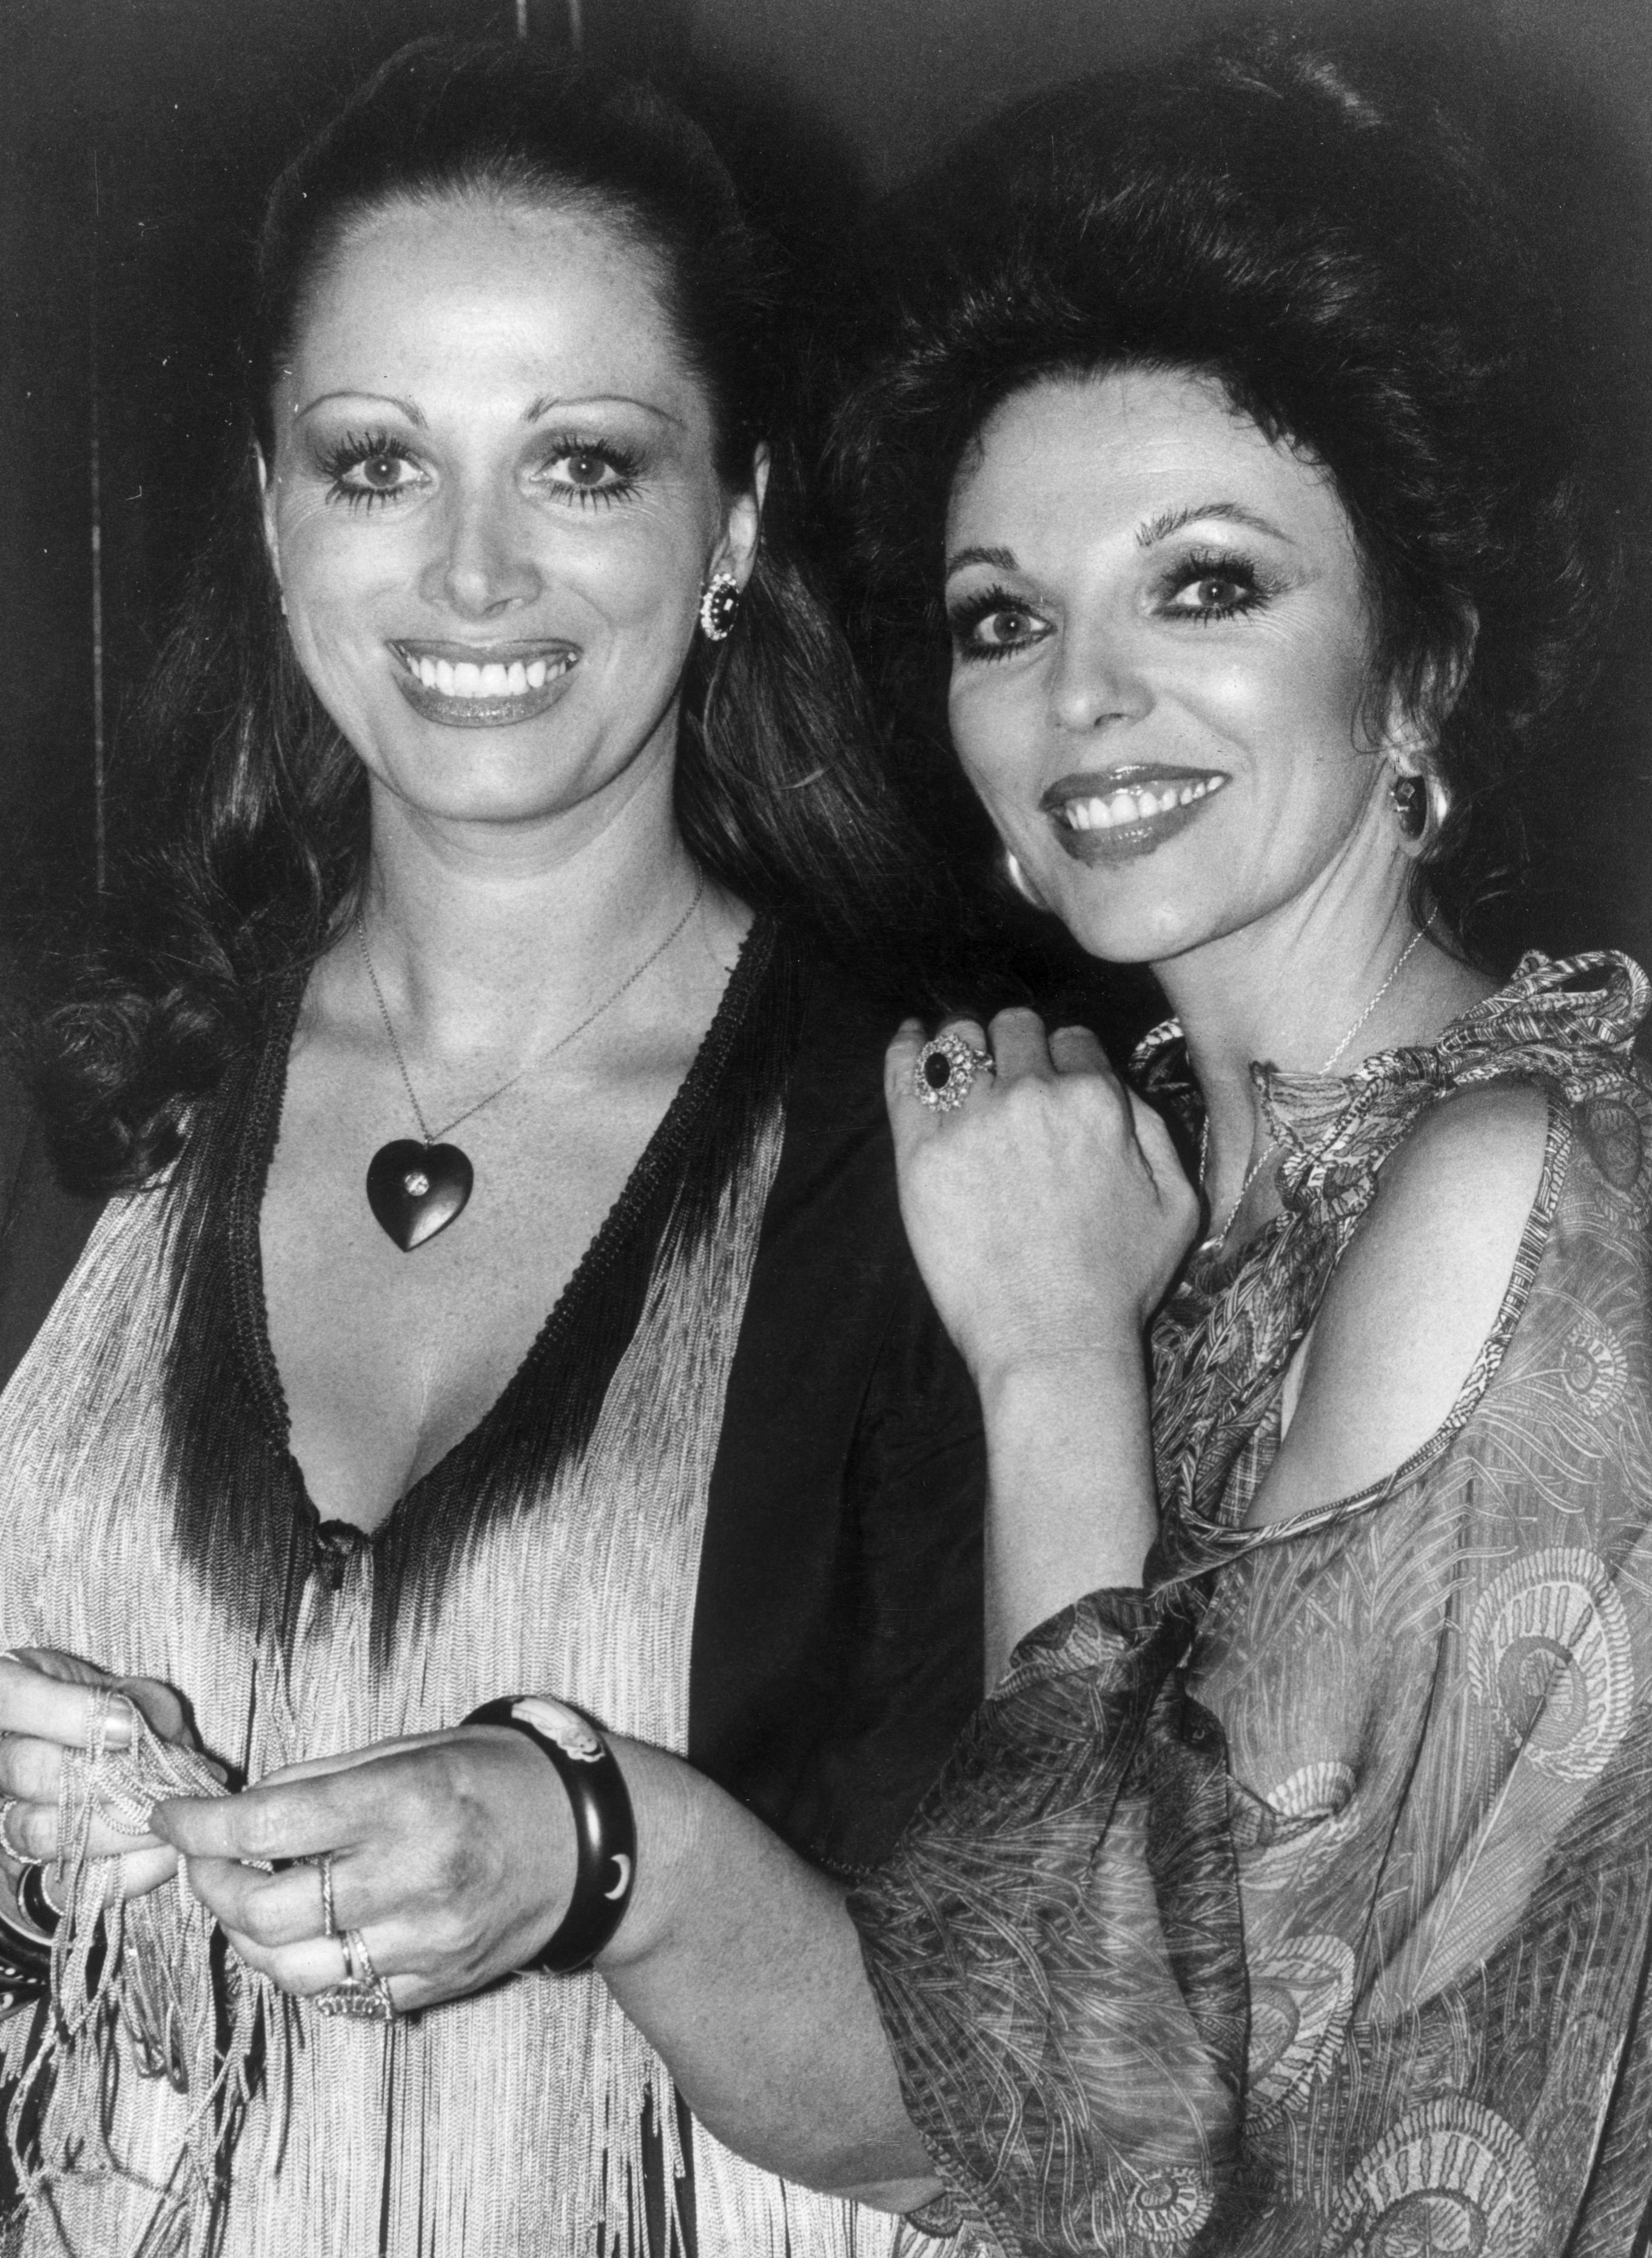 27th September 1977:  British actress Joan Collins and writer Jackie Collins at a party celebrating the release of 'The Stud', a film based on a novel by her sister.  (Photo by Jones/Evening Standard/Getty Images)